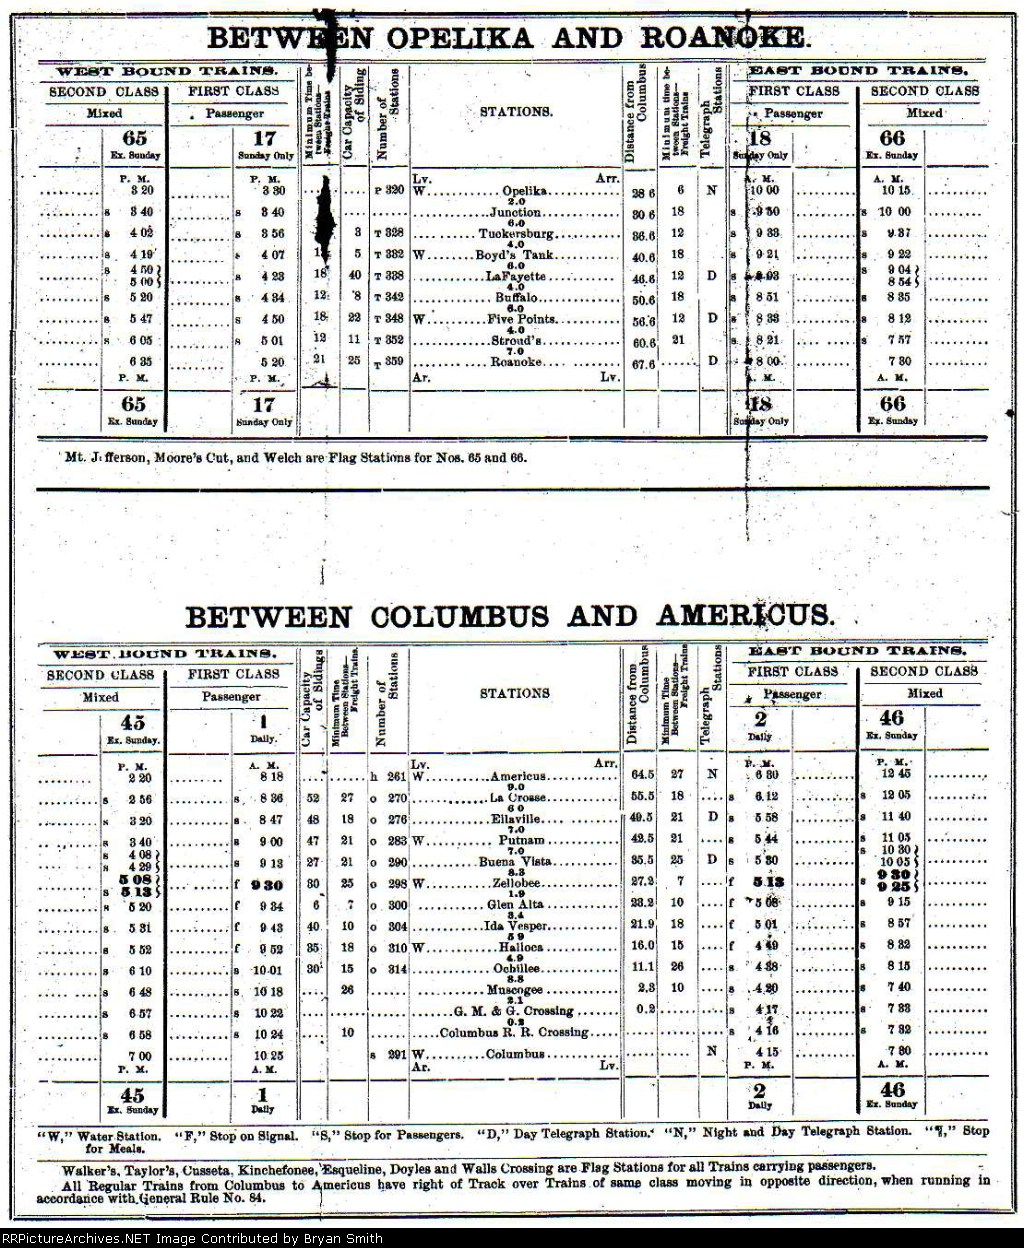 Central RR of GA employee timetable for the Savannah and Western division dated October 23, 1892